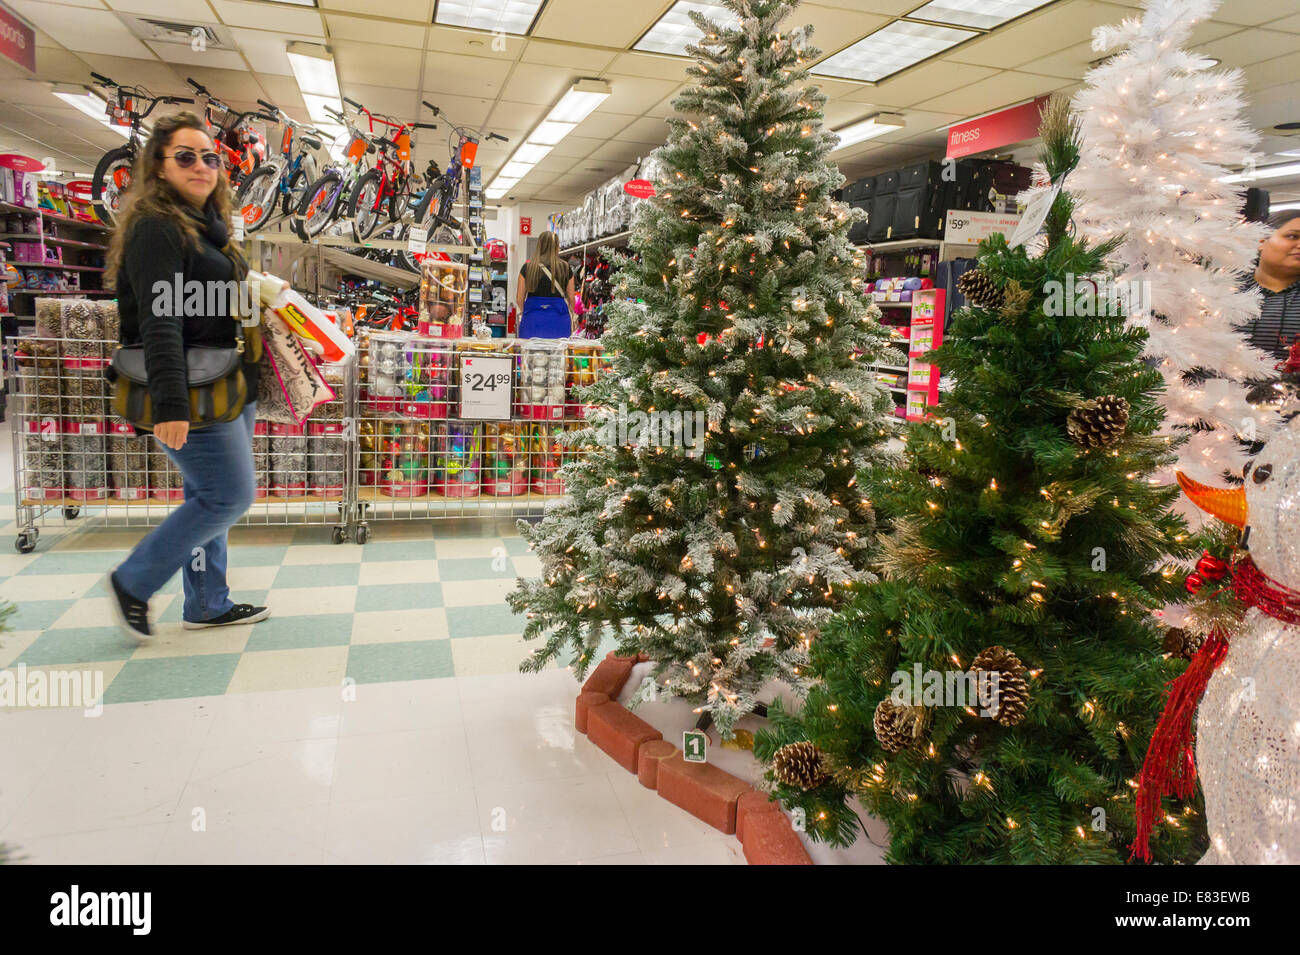 Kmart Store Display Stock Photos & Kmart Store Display Stock Images ...